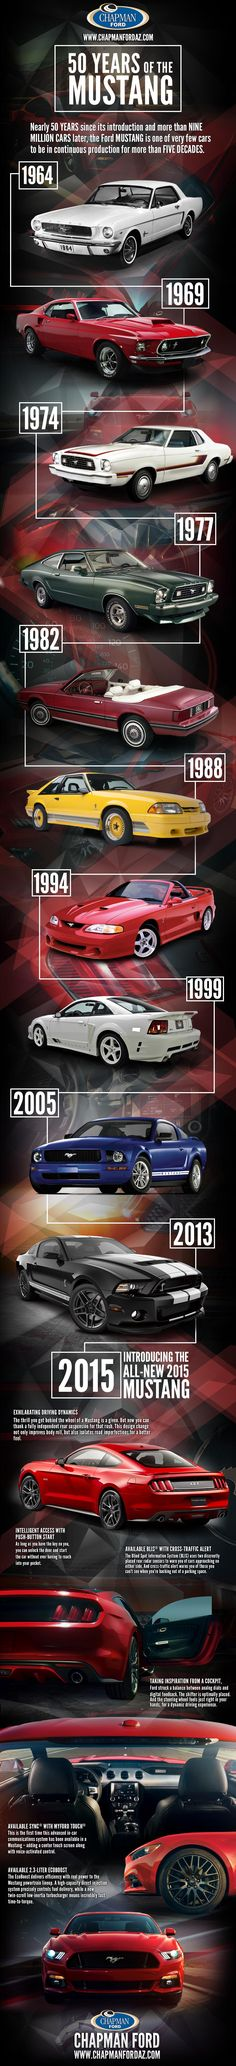 50 Years of the Ford Mustang.